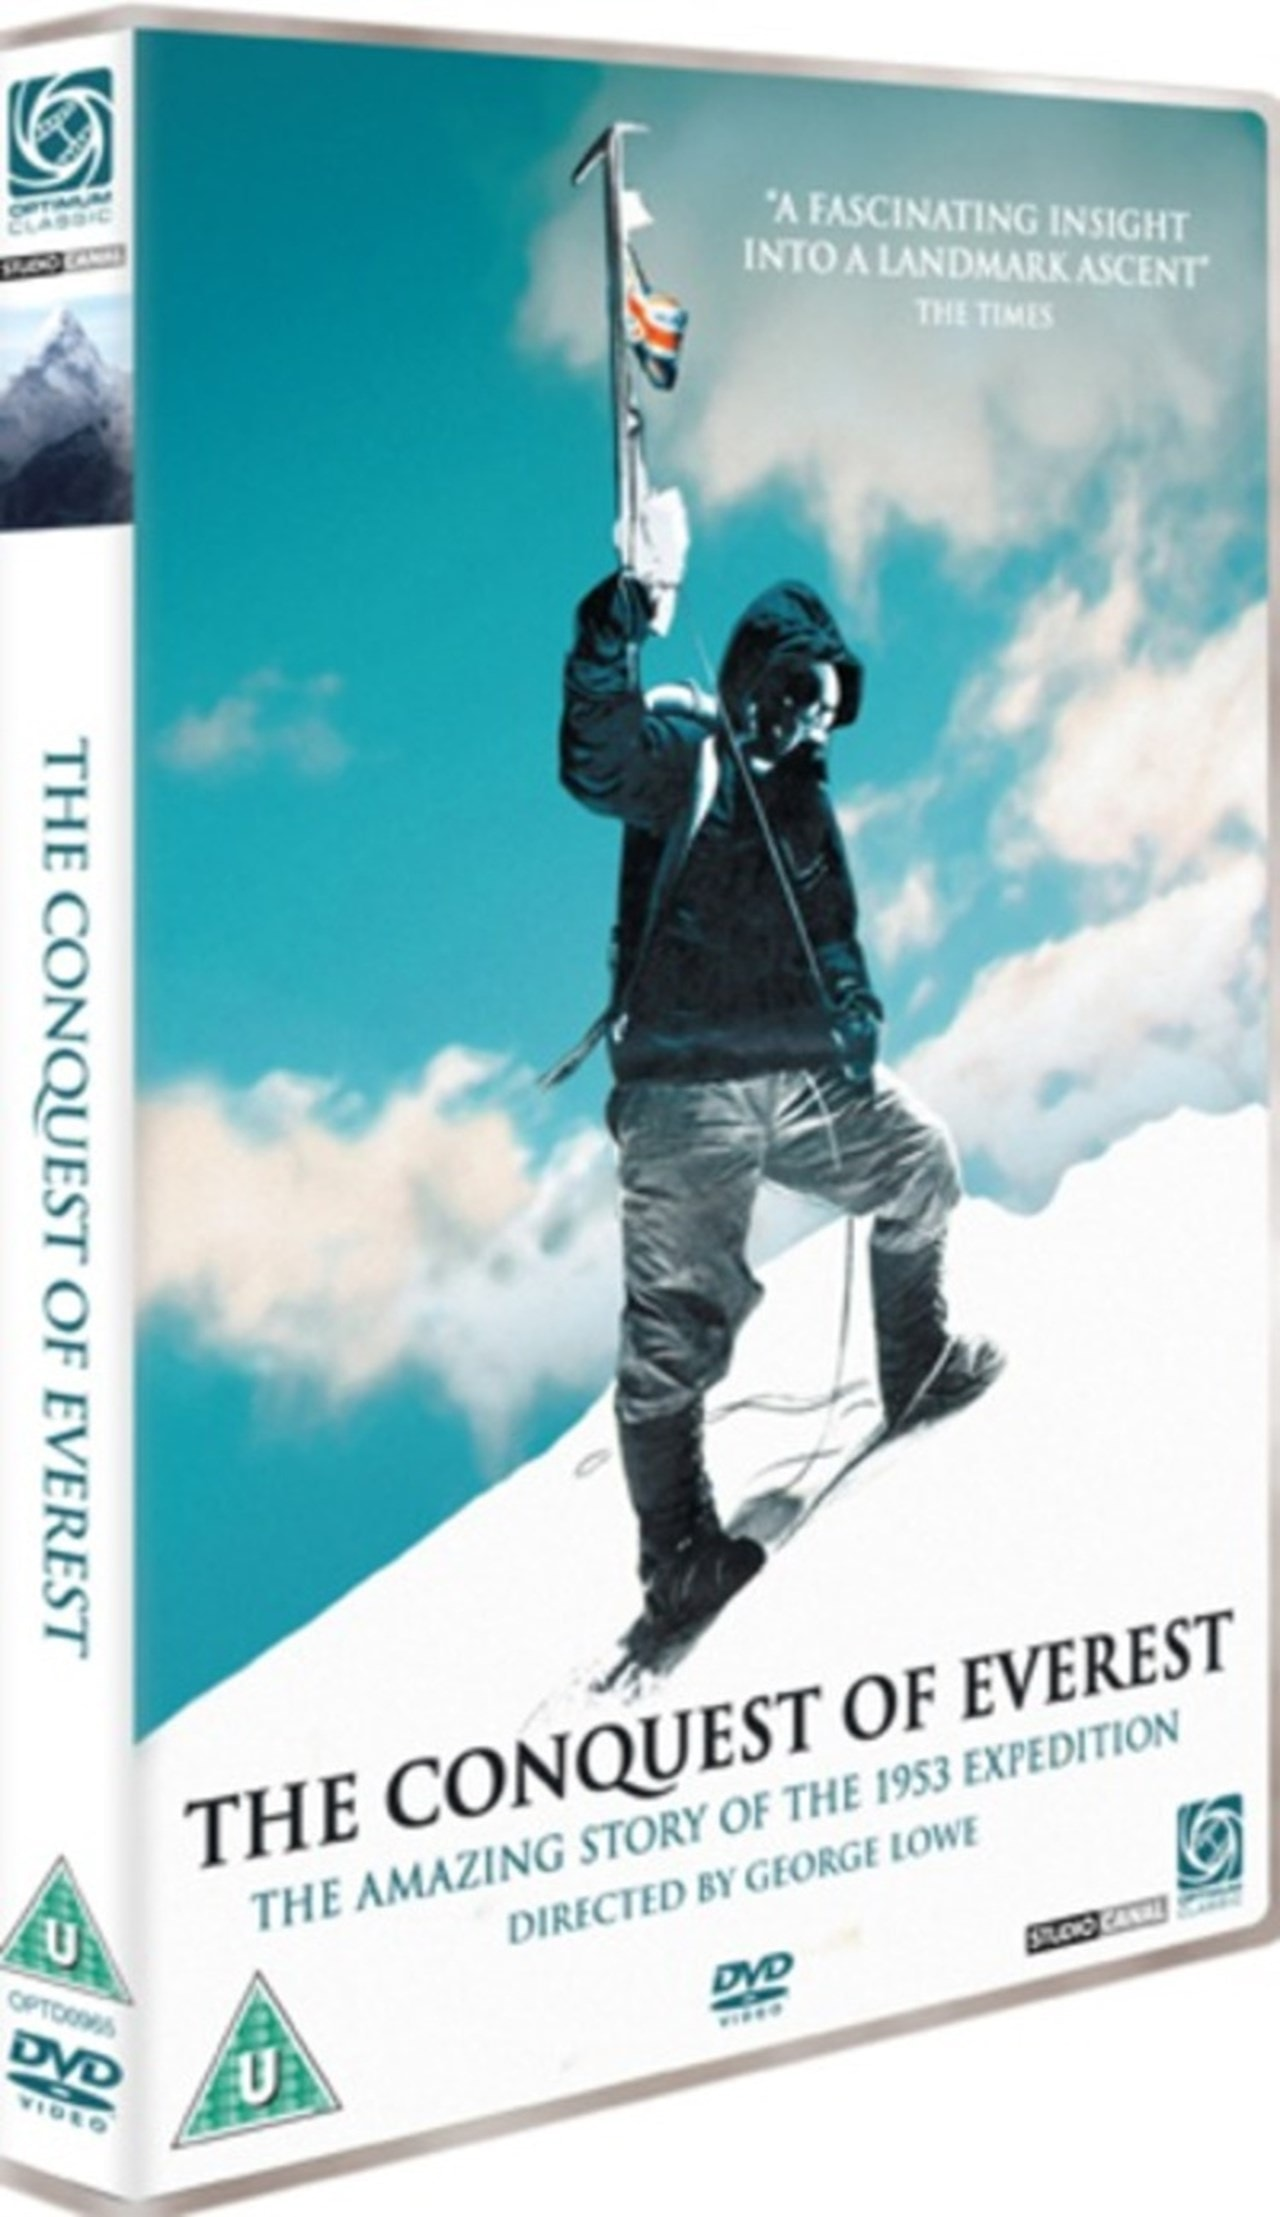 The Conquest of Everest - 1